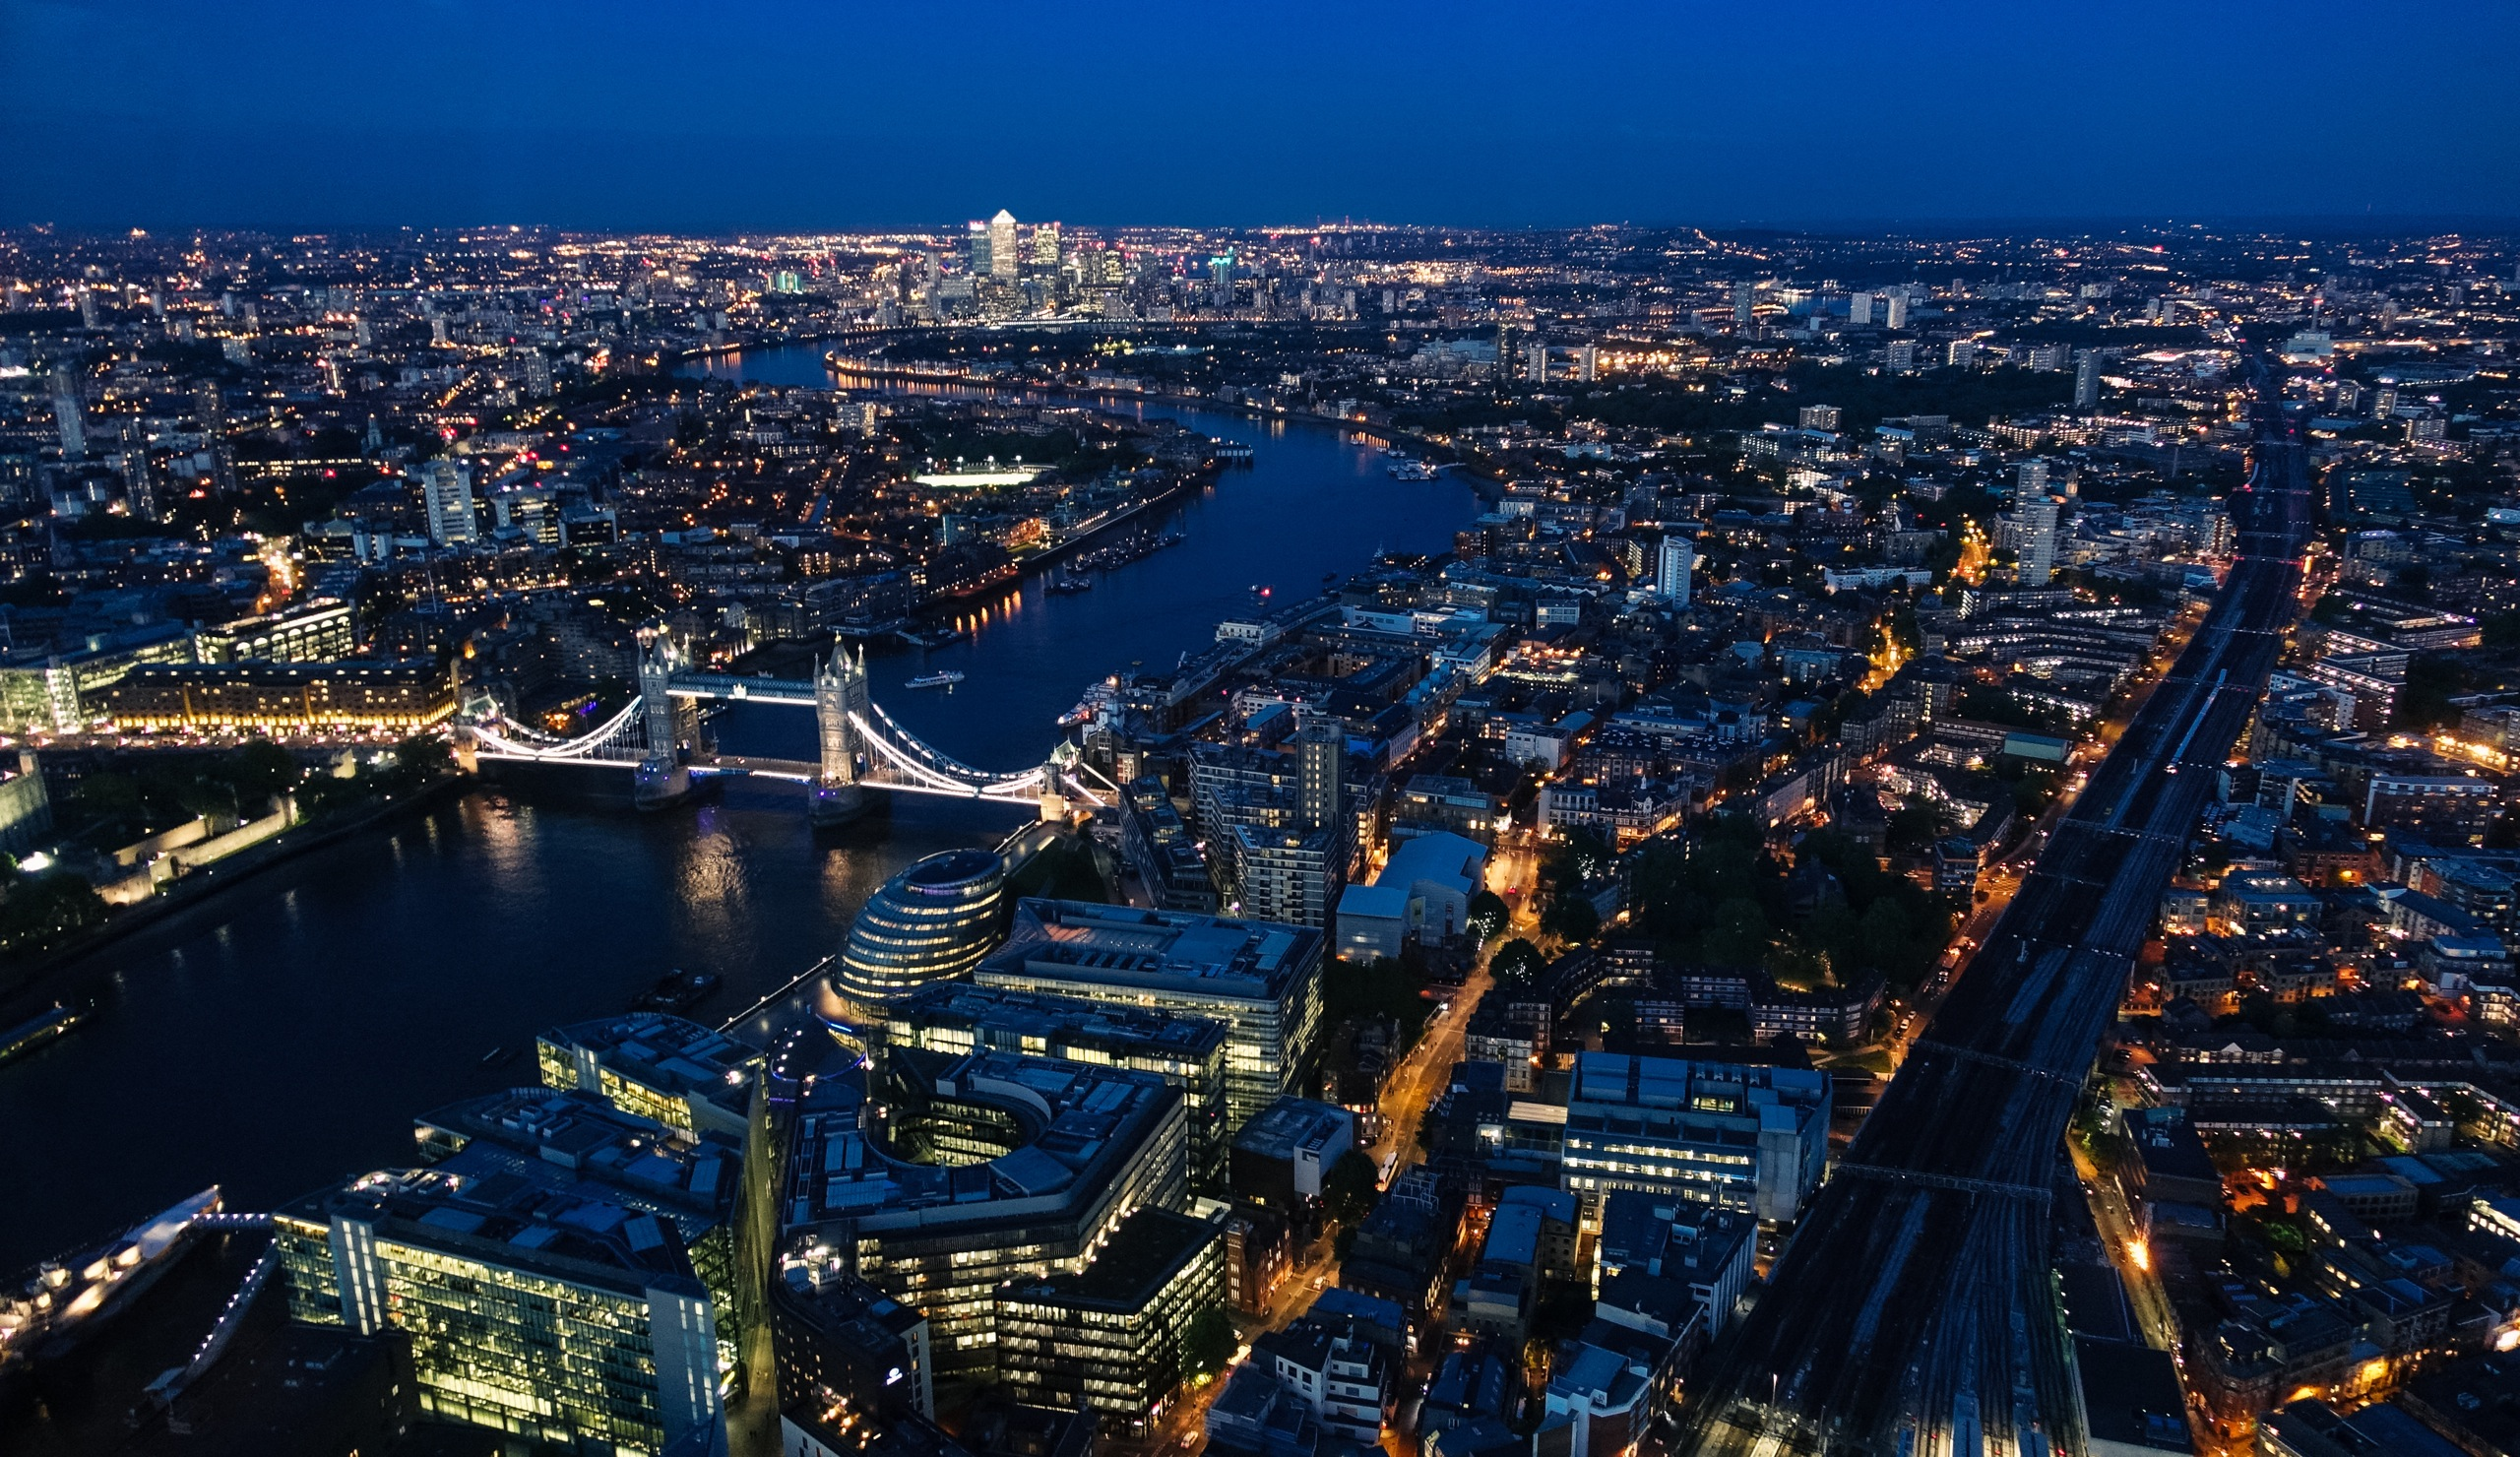 Tower Bridge view from the Shard at night